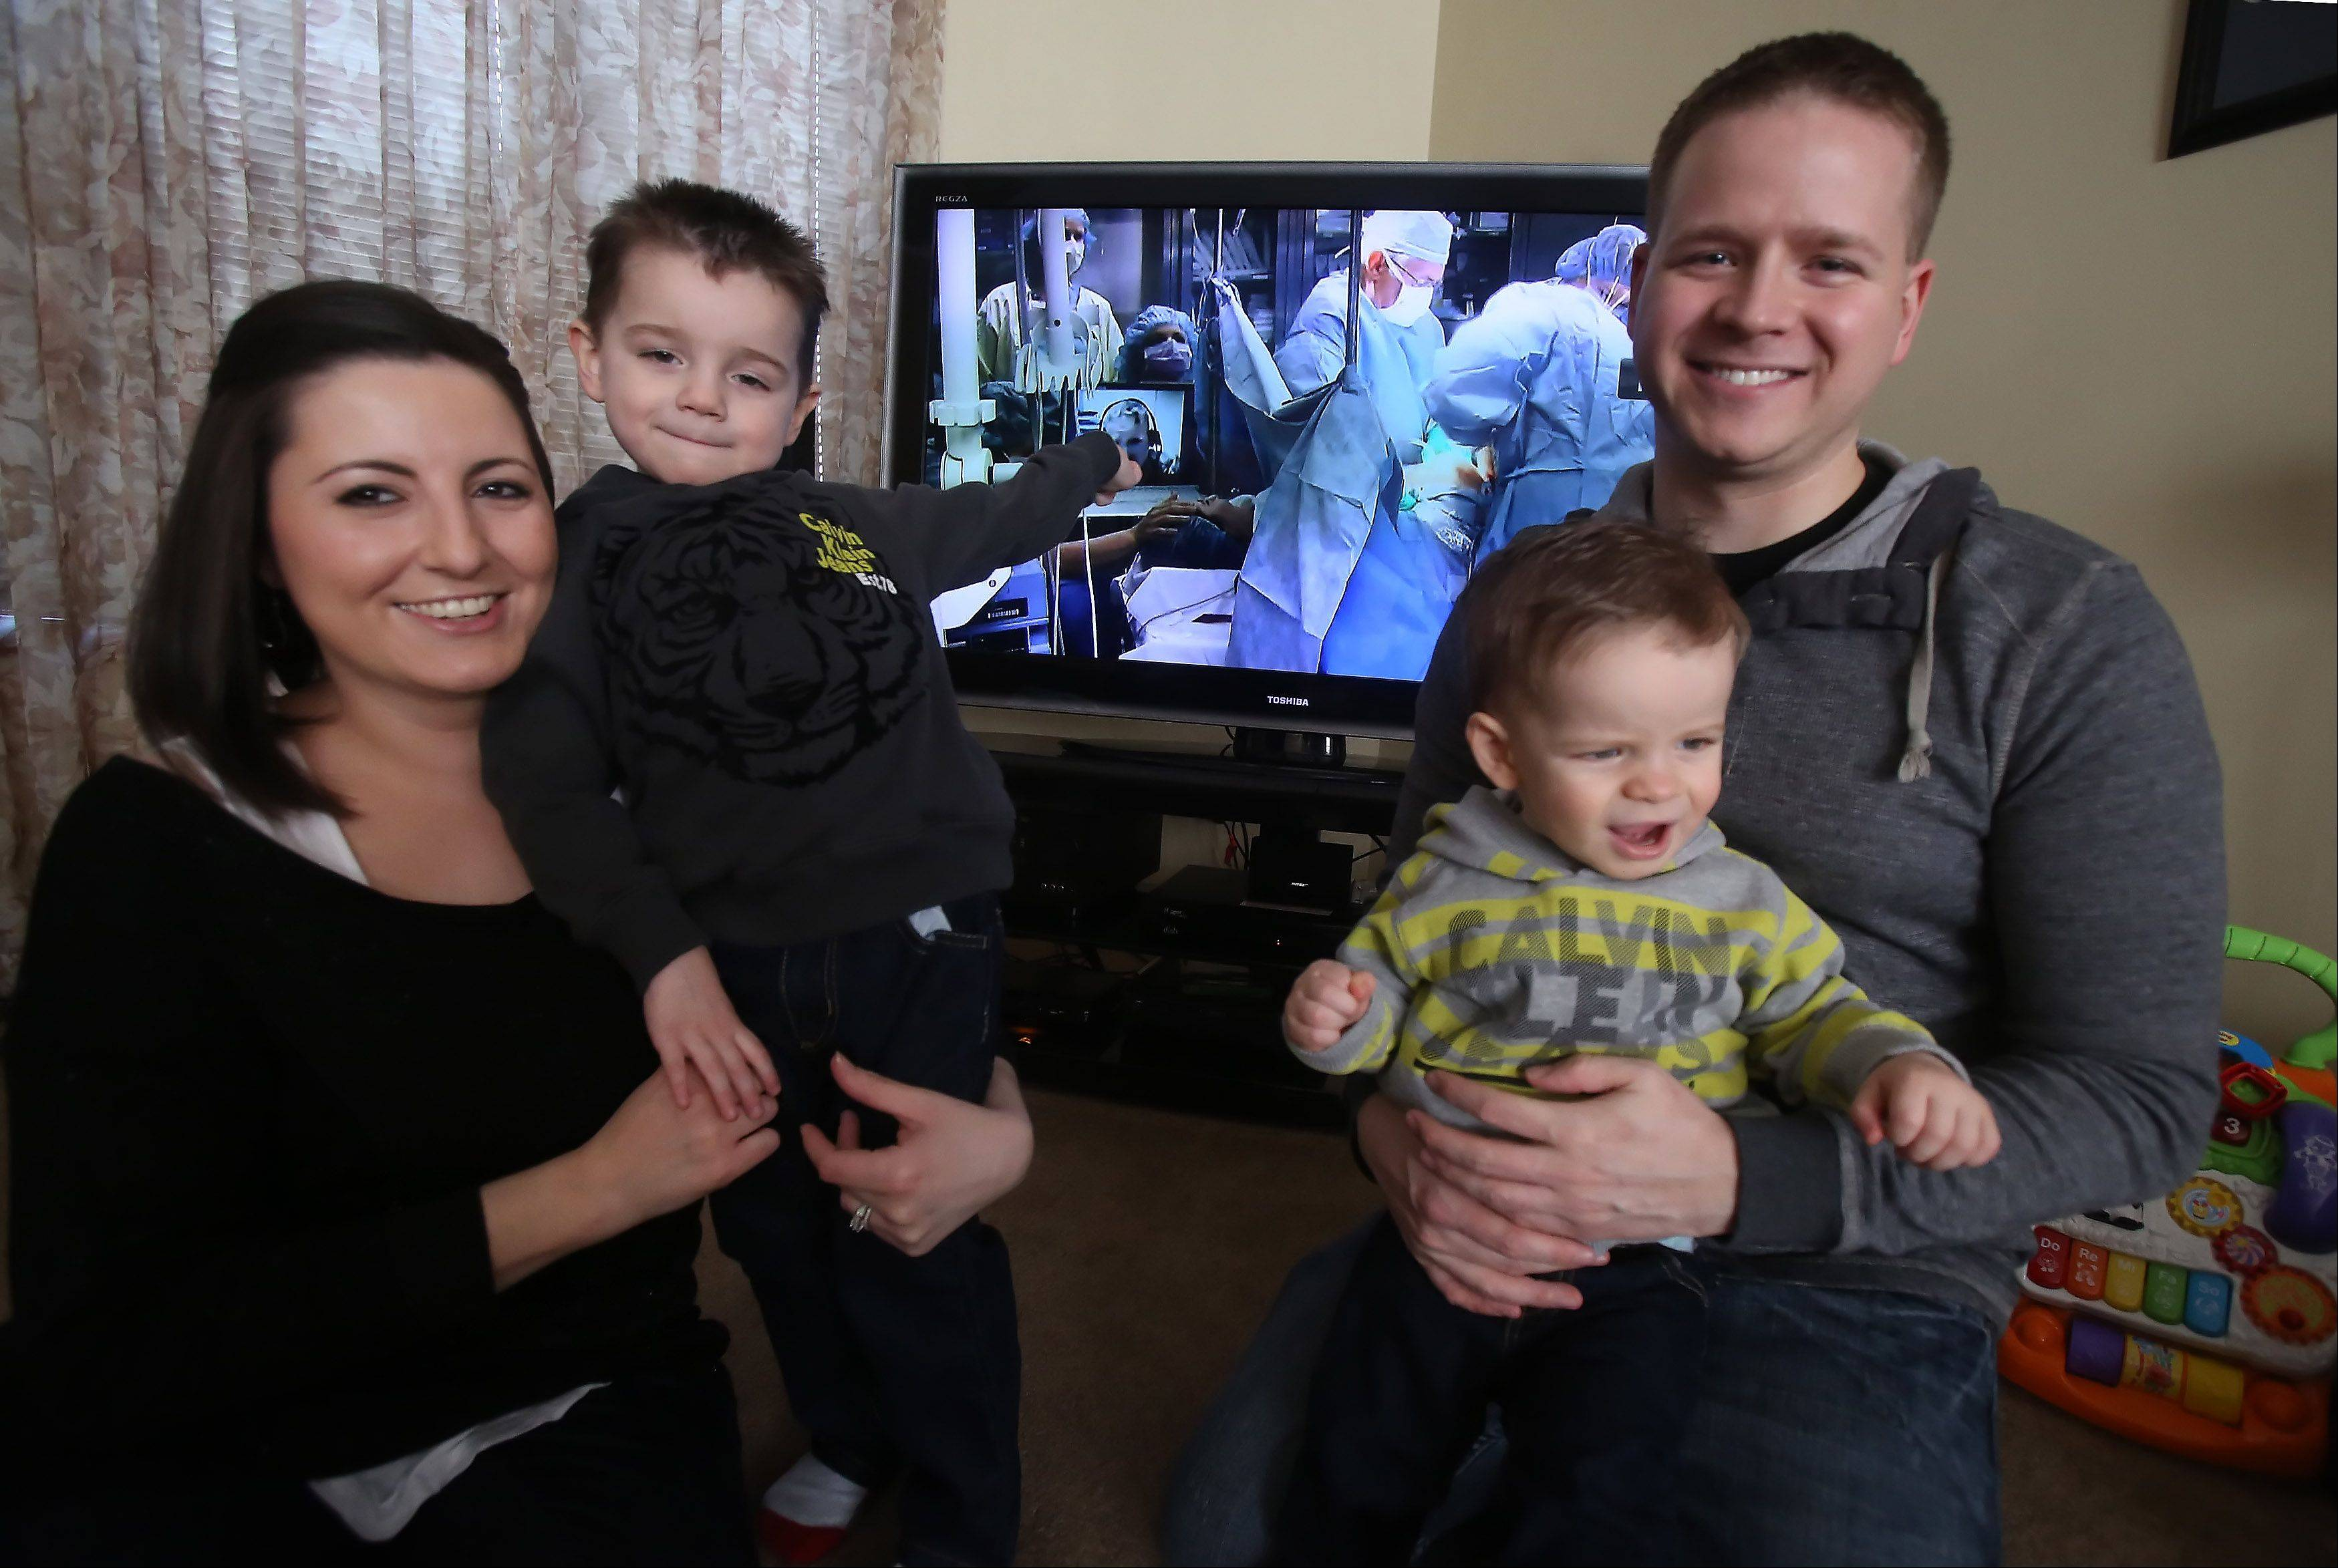 Bensenville residents Greg and Jennifer Bacon, with their sons, 3-year-old Dean, left, and 18-month-old Christopher, were featured in a Microsoft ad that aired Sunday night during the Super Bowl. The ad featured the birth of Dean as it was Skyped live to his dad more than 6,000 miles away at a military base in Iraq.